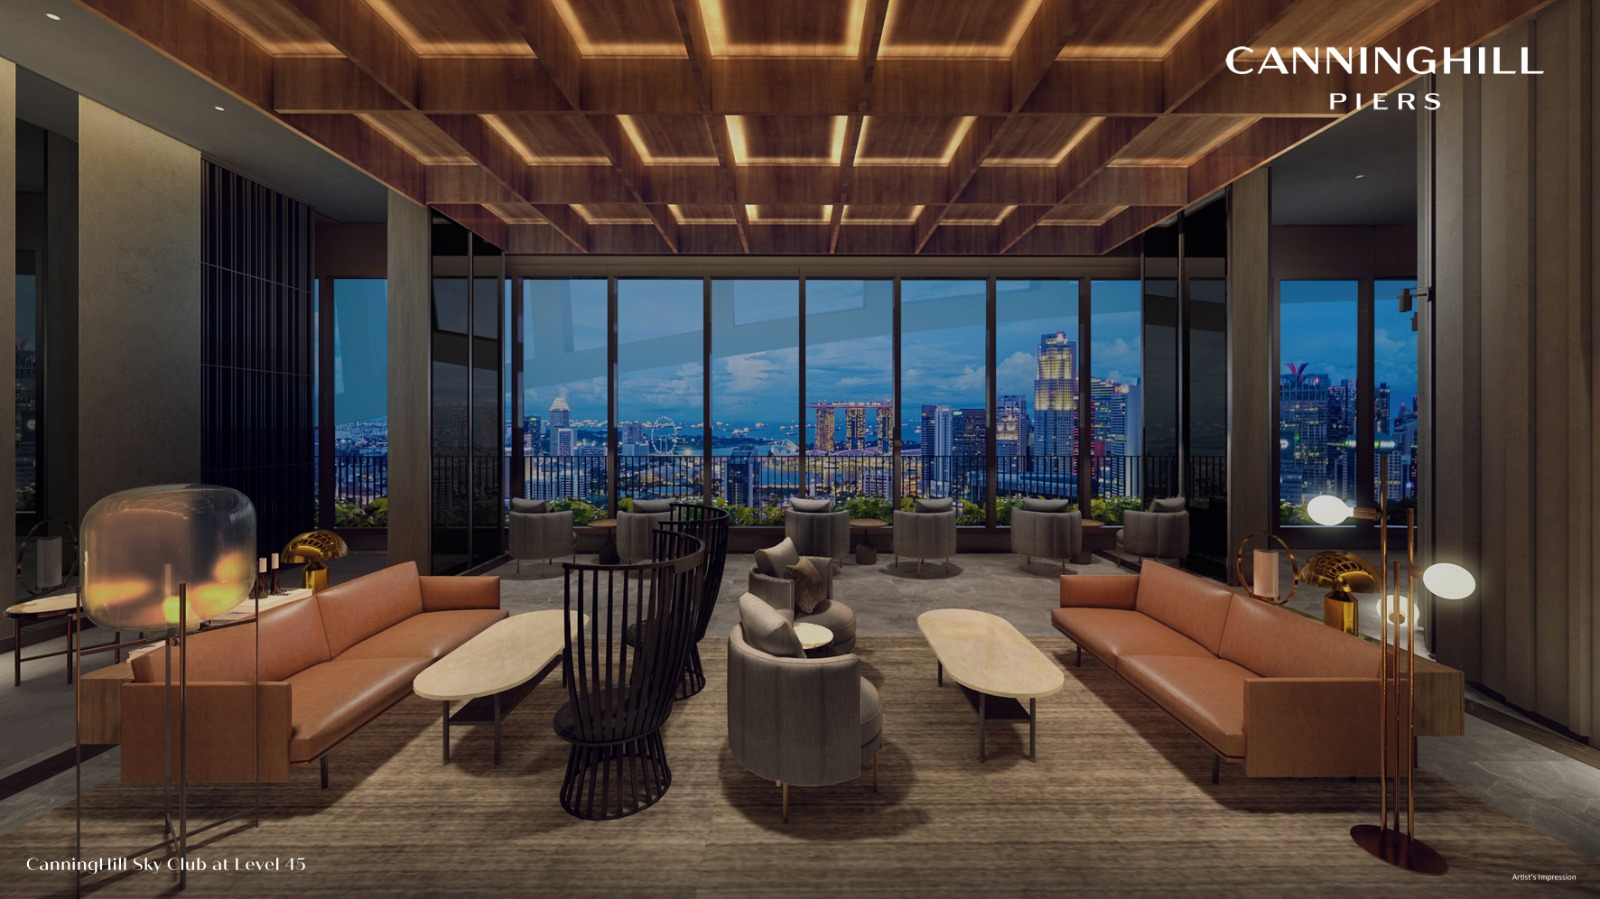 The Canninghill Piers . Sky Club at Level 45